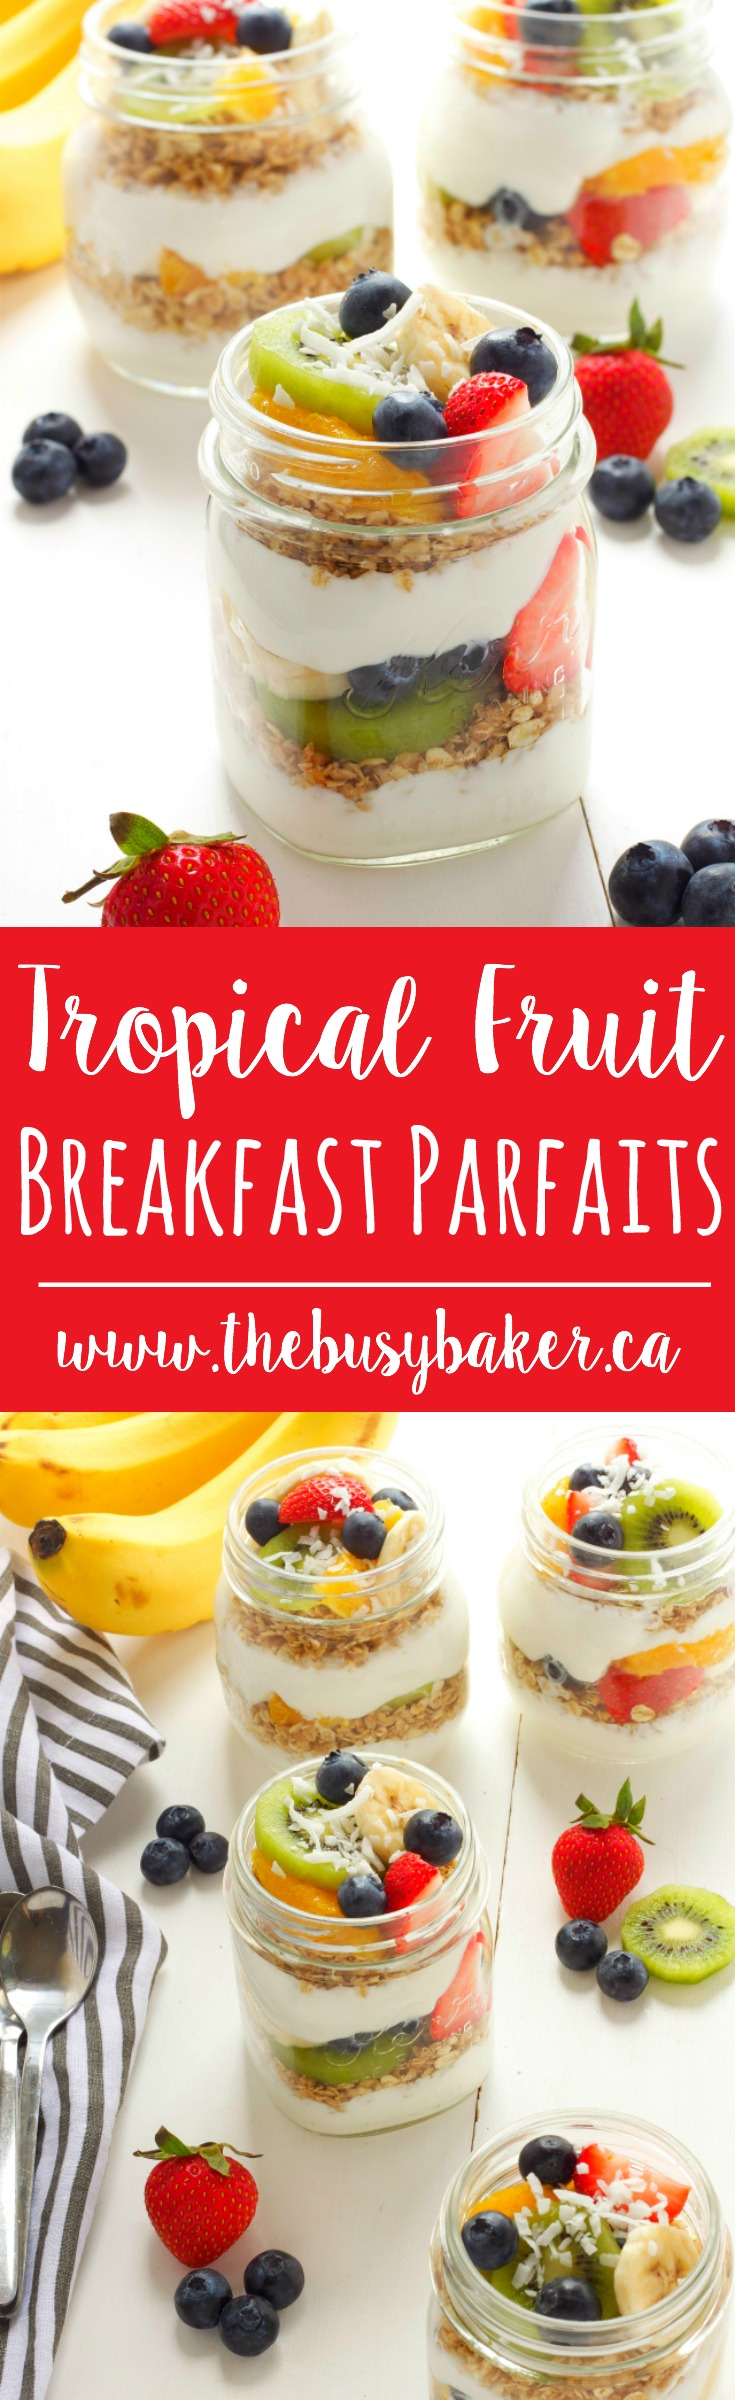 These Tropical Fruit Breakfast Parfaits feature fresh fruit, healthy homemade granola, and delicious yogurt for the perfect easy breakfast or snack! Recipe from thebusybaker.ca! via @busybakerblog